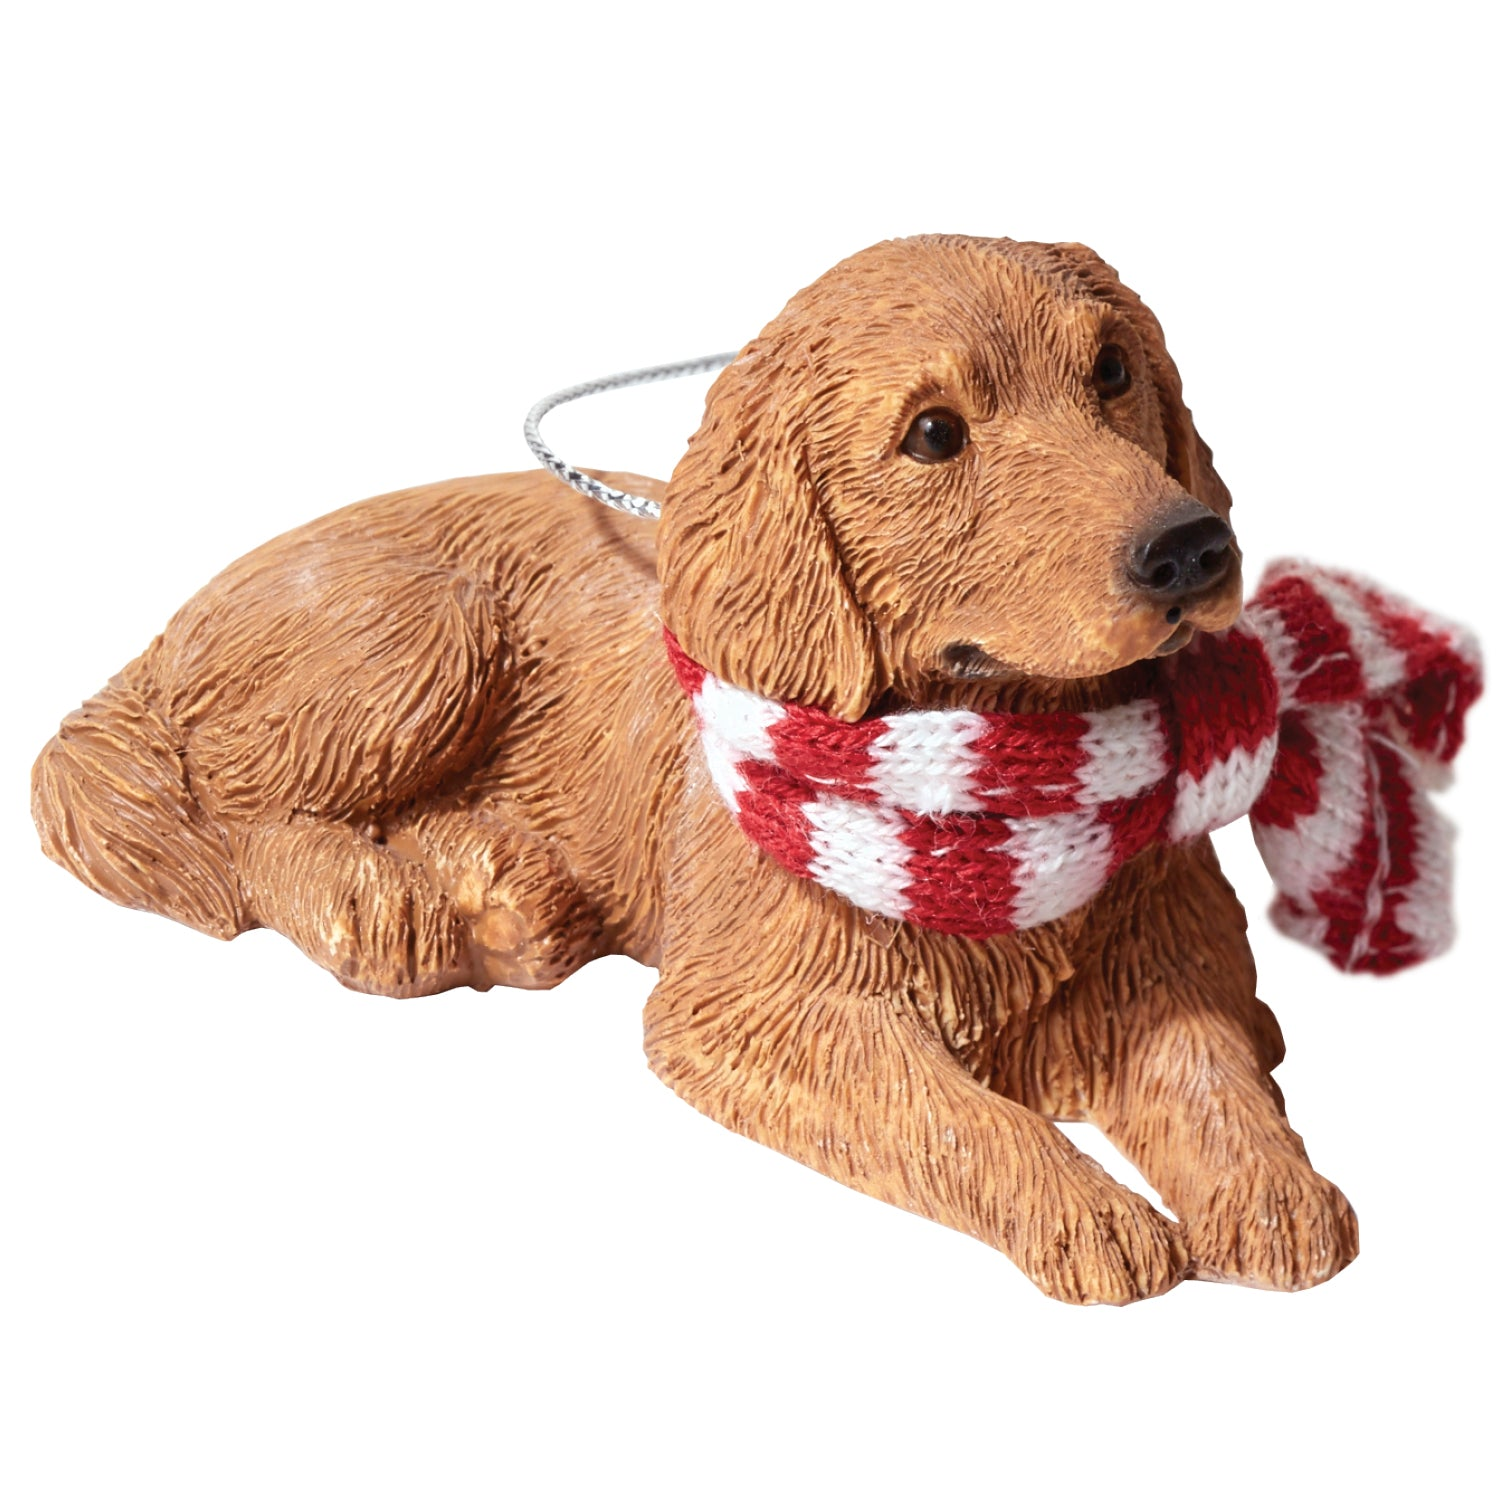 Sandicast Lying Golden Retriever w/ Scarf Christmas Dog Ornament